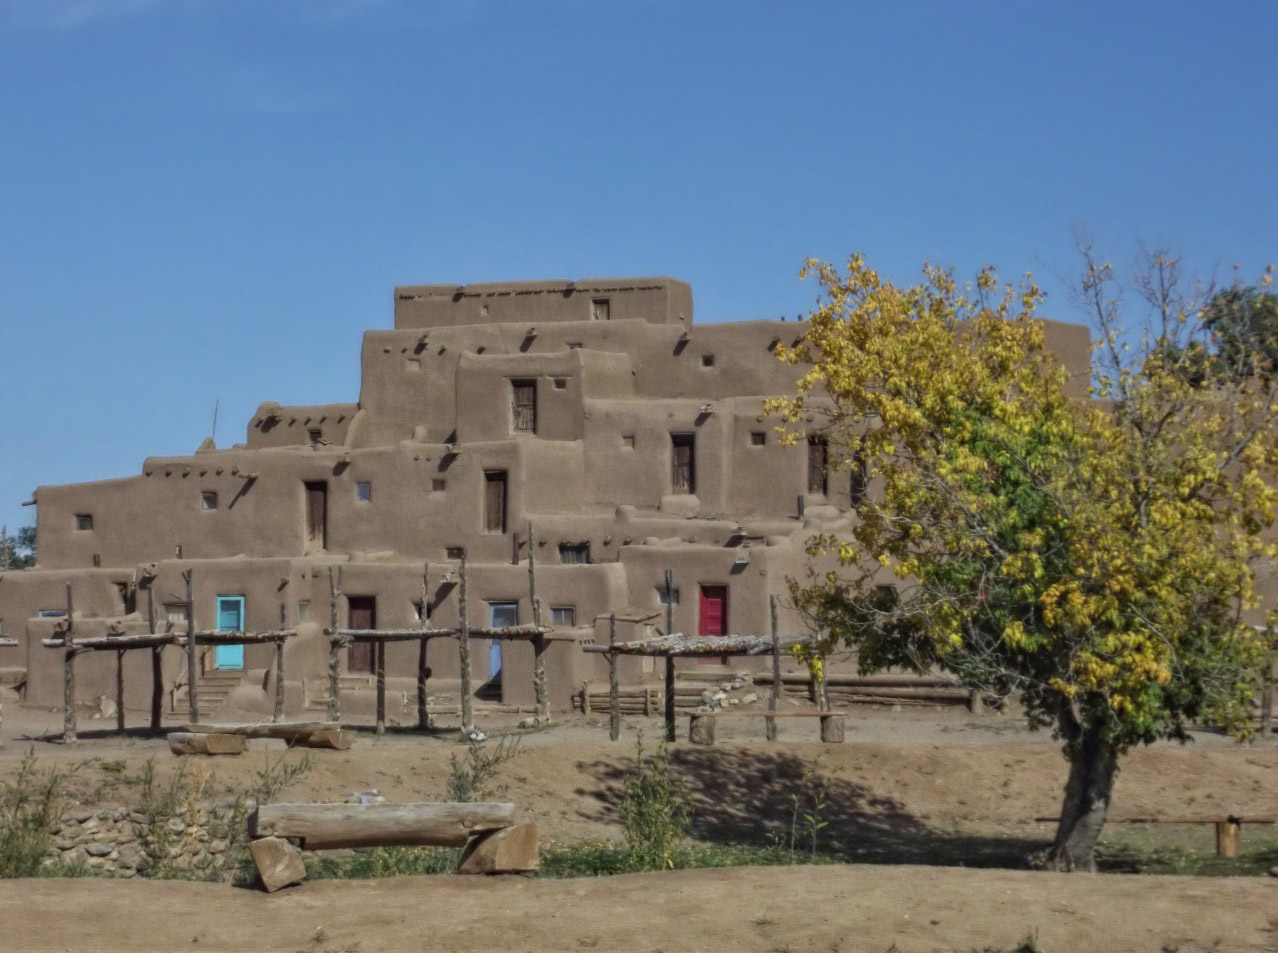 Adobe houses stacked on top of each other